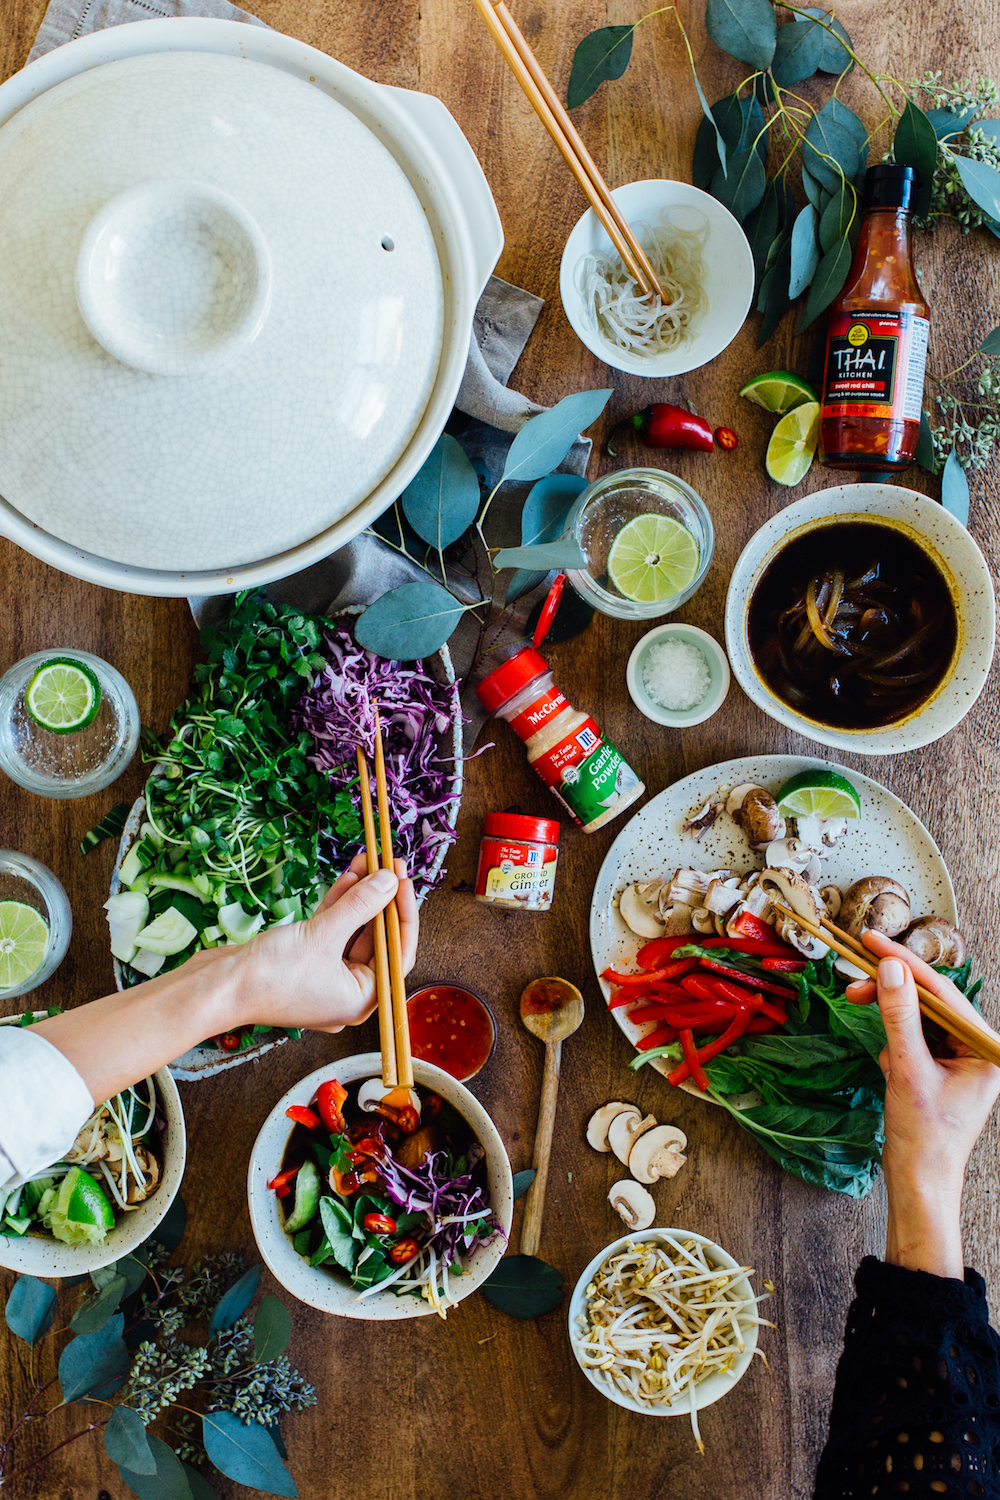 hot to throw a hot pot dinner party